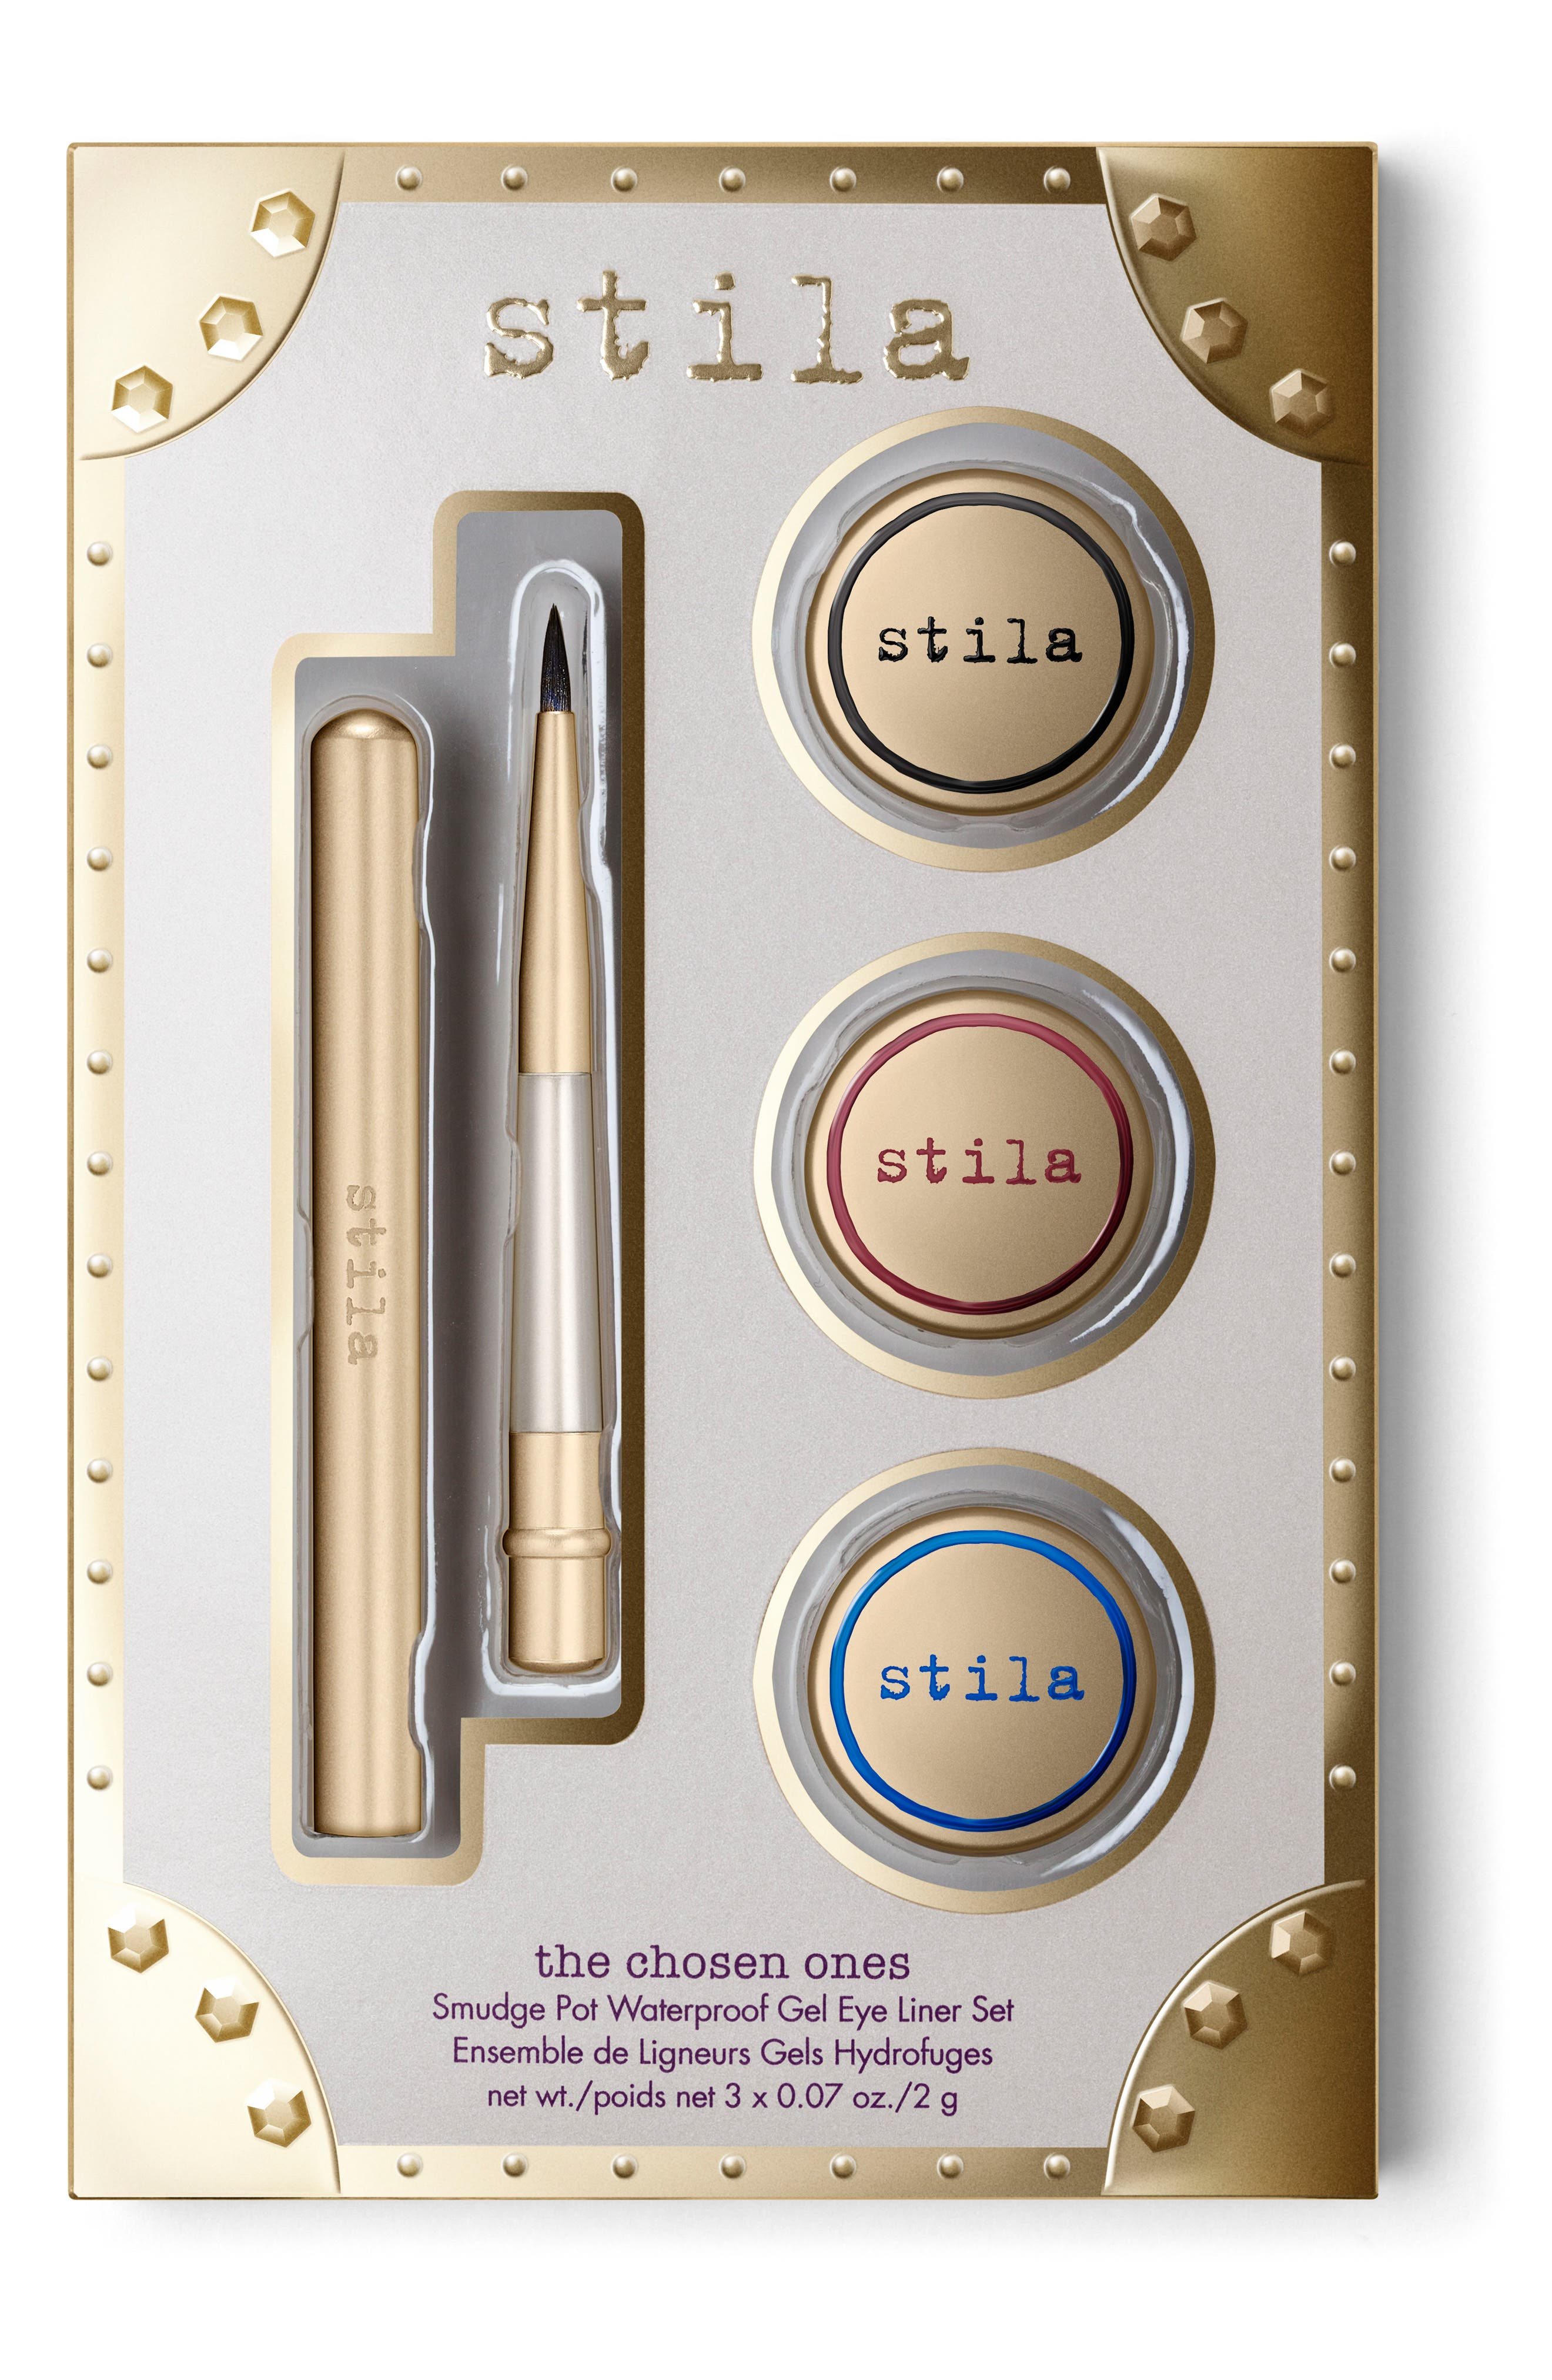 stila the chosen ones smudge pot eyeliner set